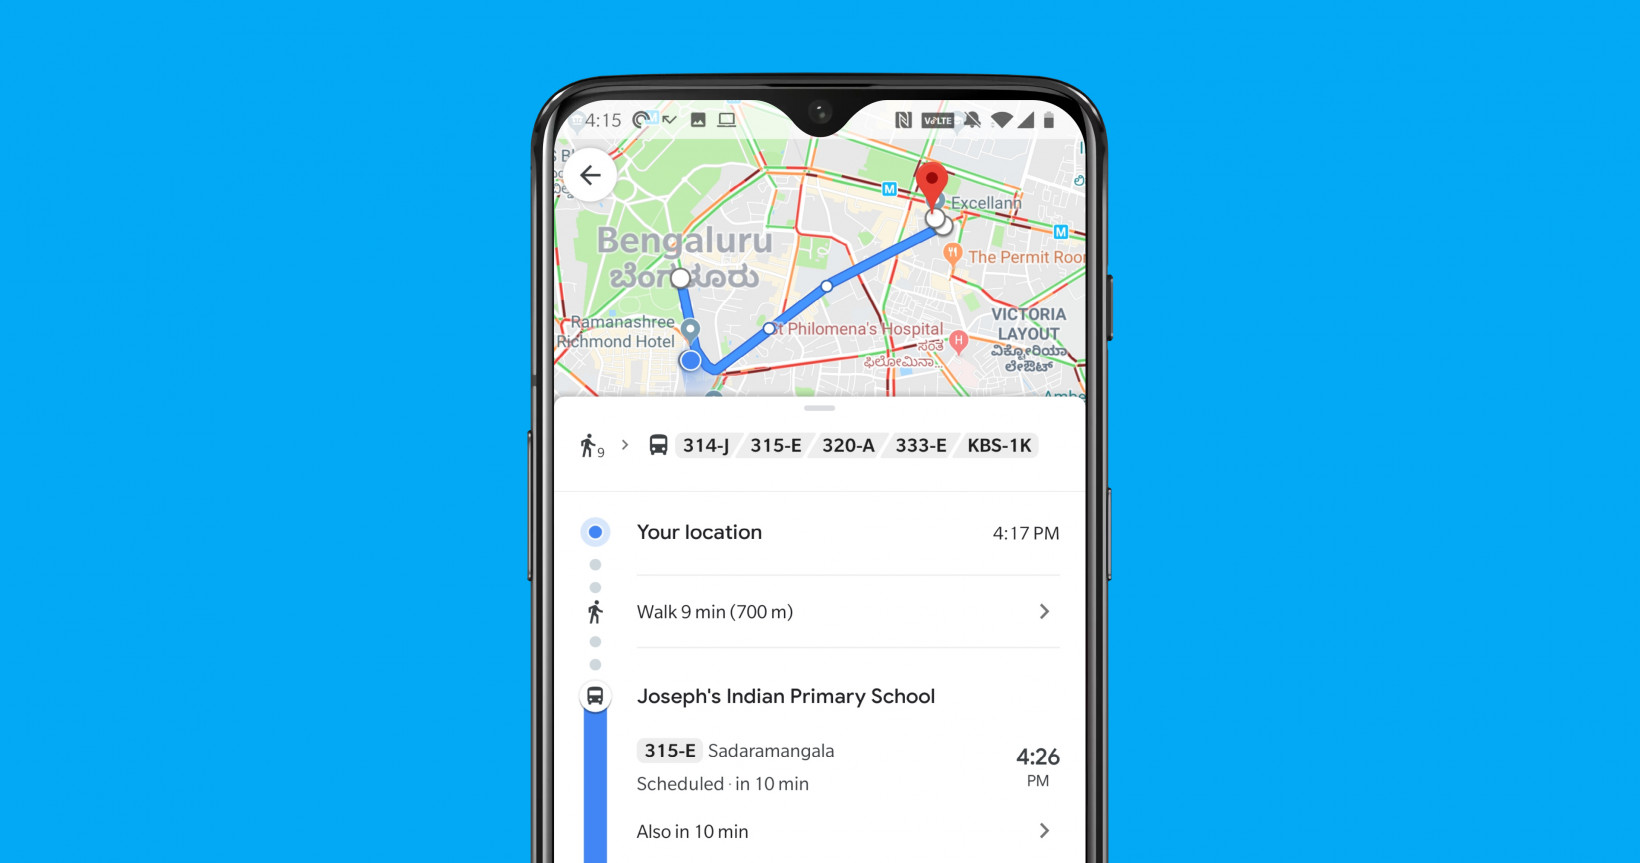 Google Maps' new features for India just made my commute a ... on goolge maps, googlr maps, stanford university maps, android maps, amazon fire phone maps, aerial maps, road map usa states maps, ipad maps, gppgle maps, iphone maps, googie maps, gogole maps, aeronautical maps, topographic maps, online maps, microsoft maps, search maps, waze maps, msn maps, bing maps,